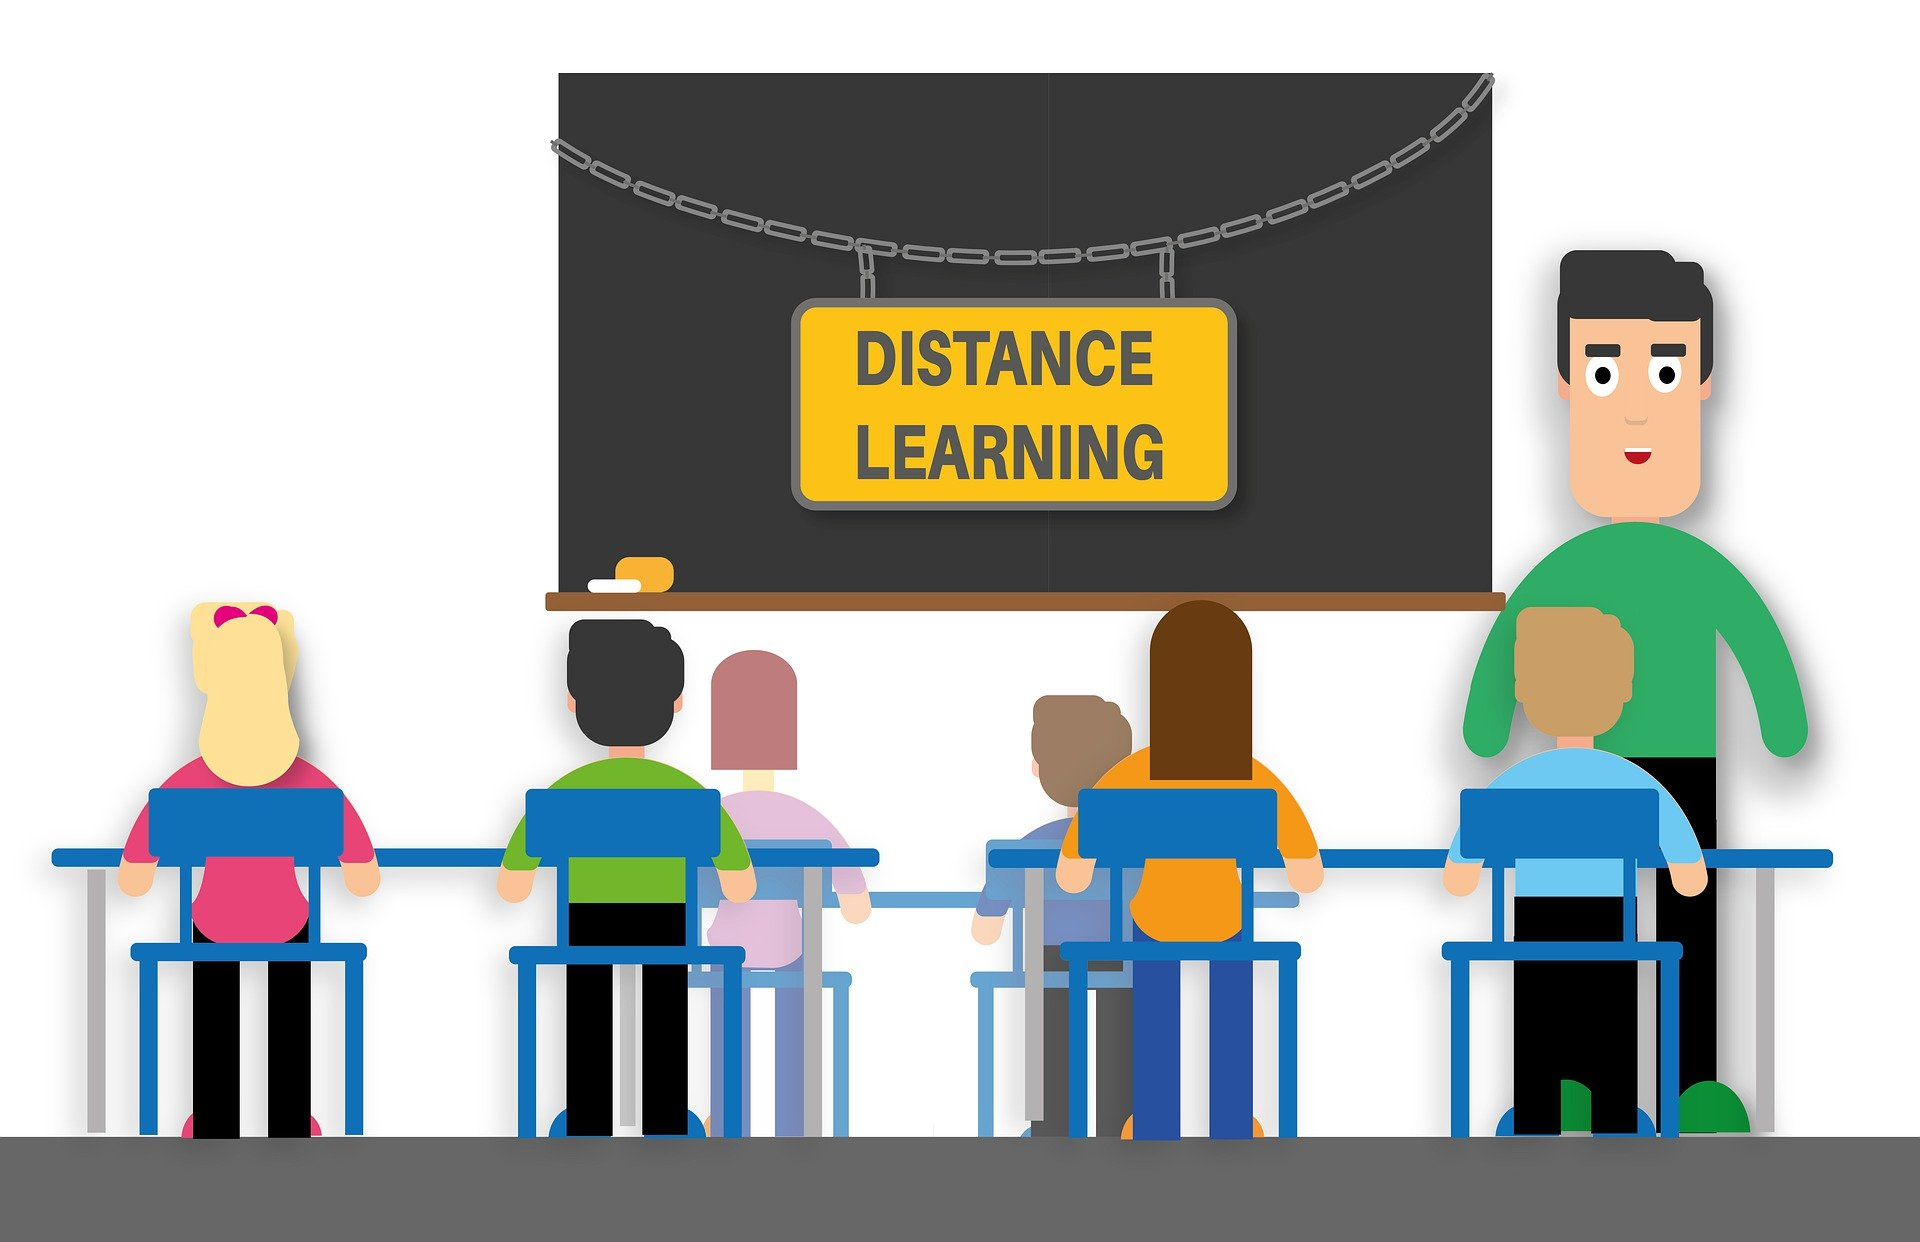 advantages of social media include distance learning